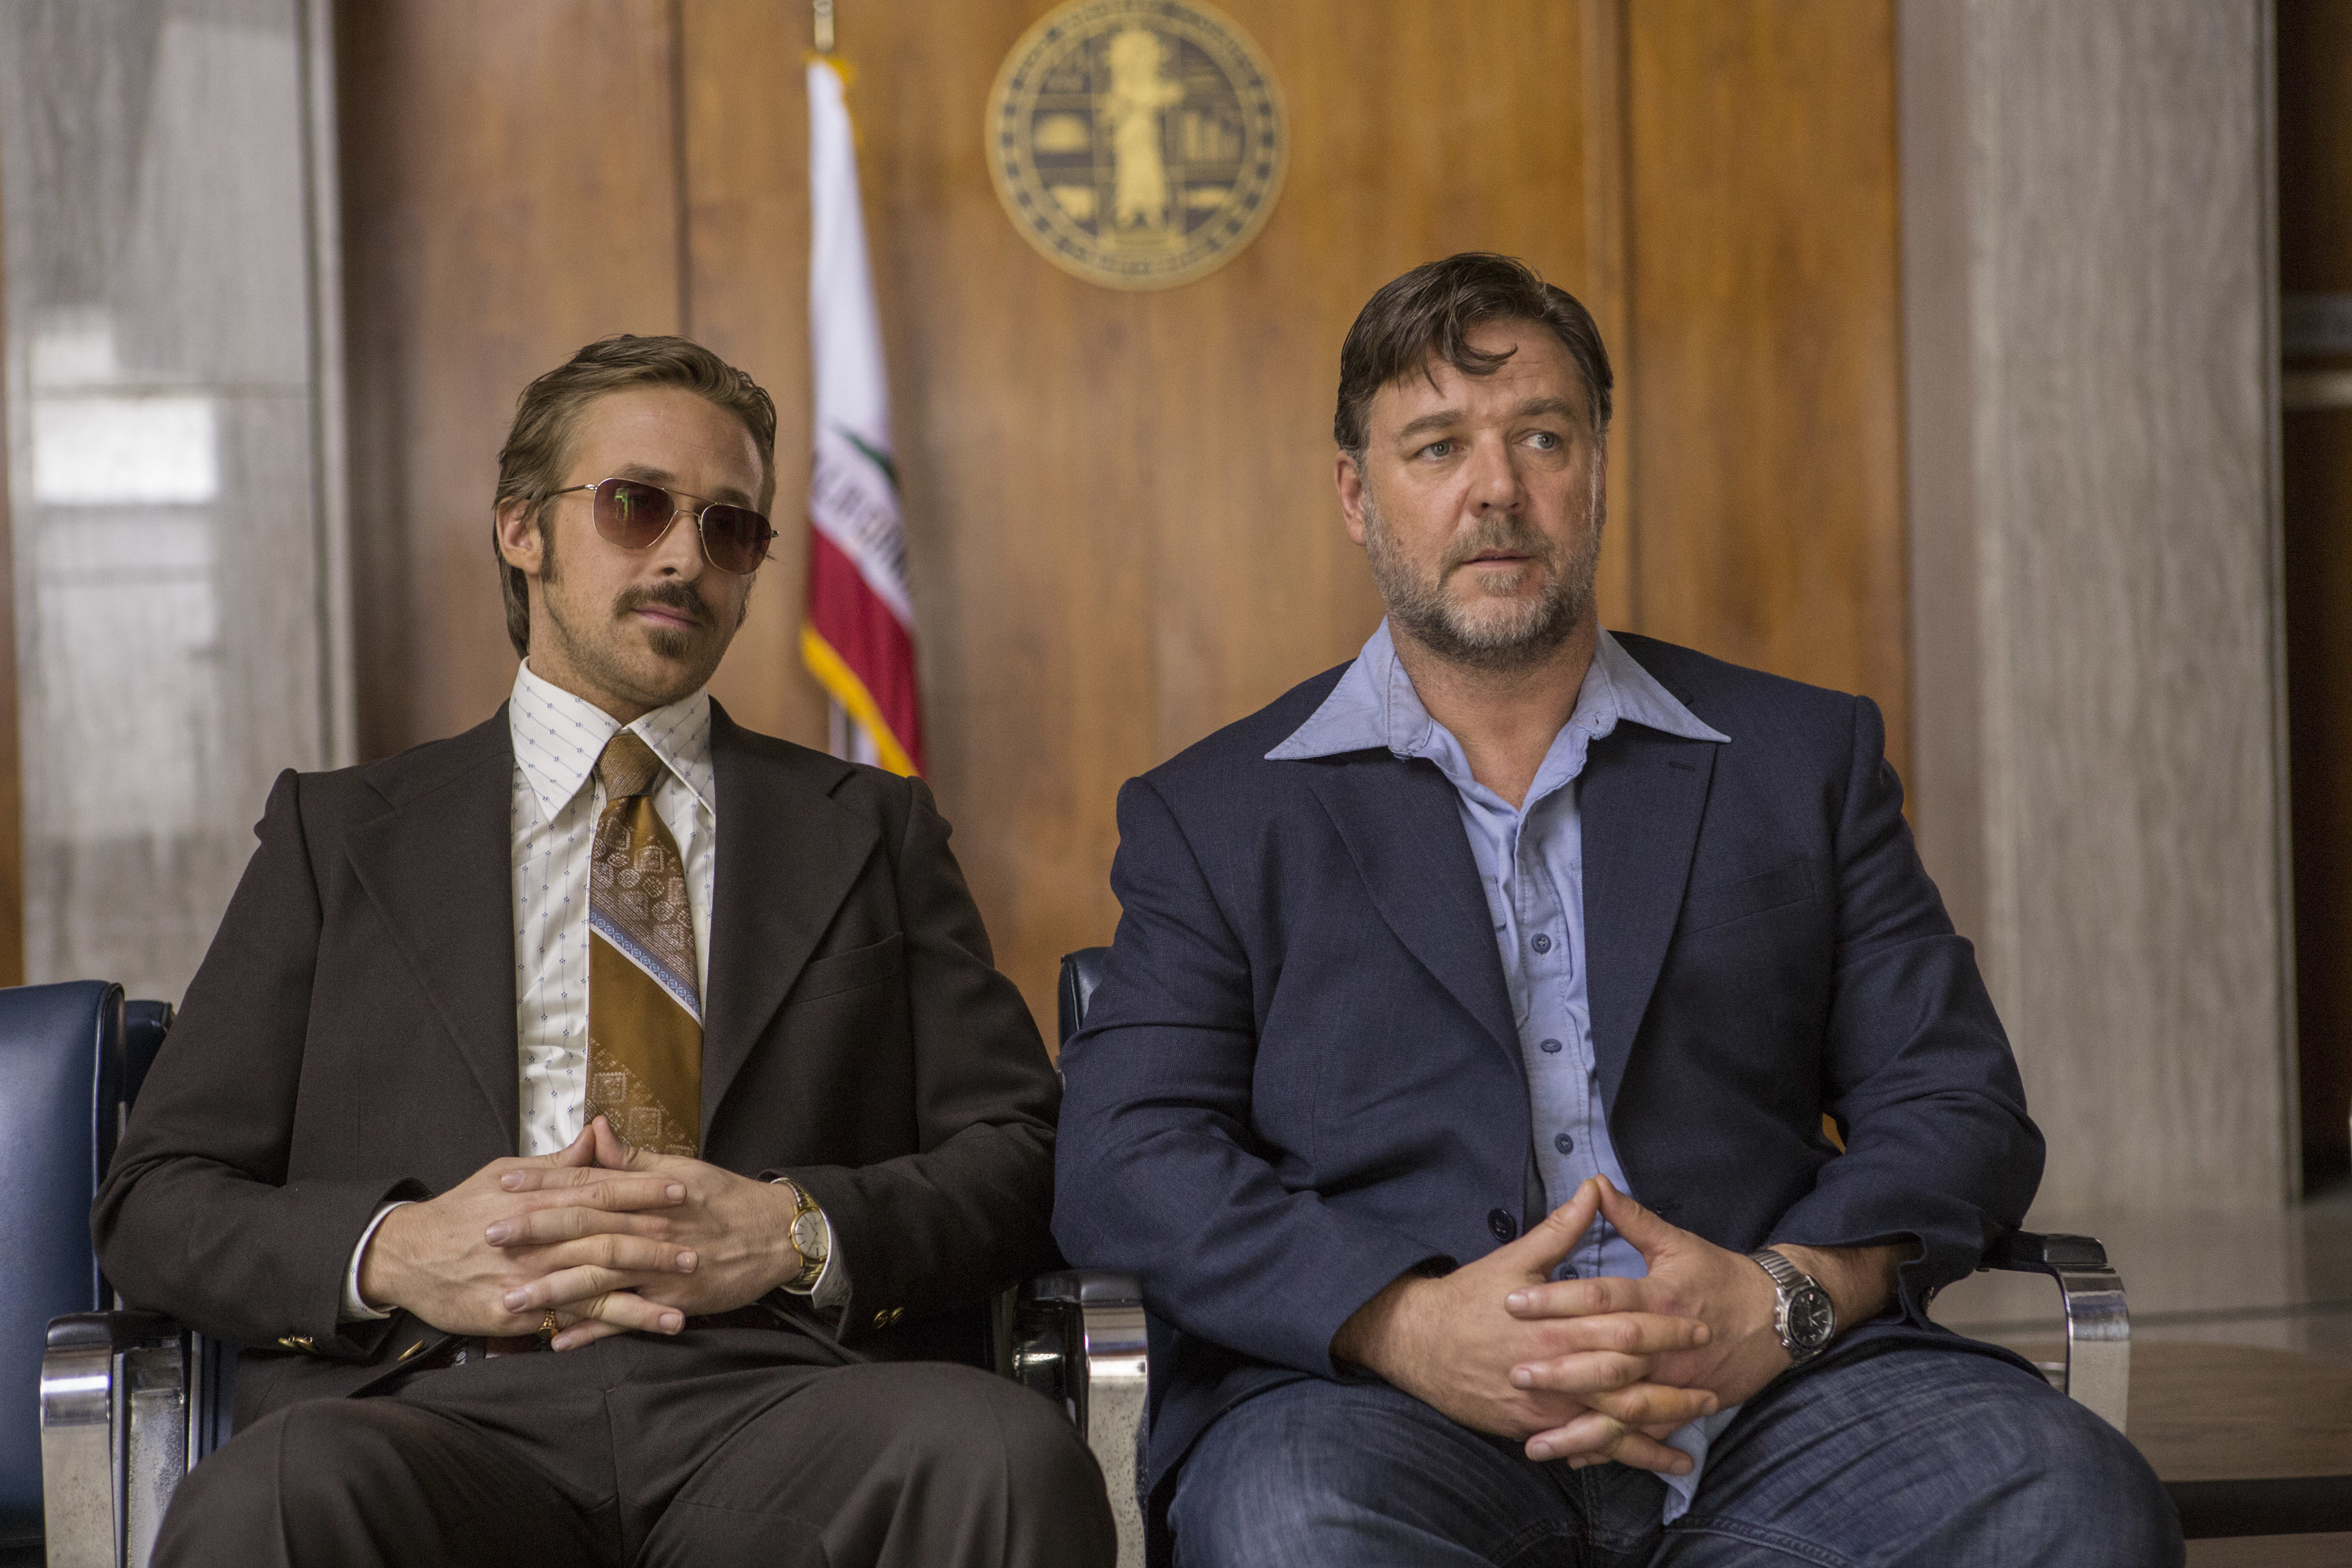 Shane Black's The Nice Guys